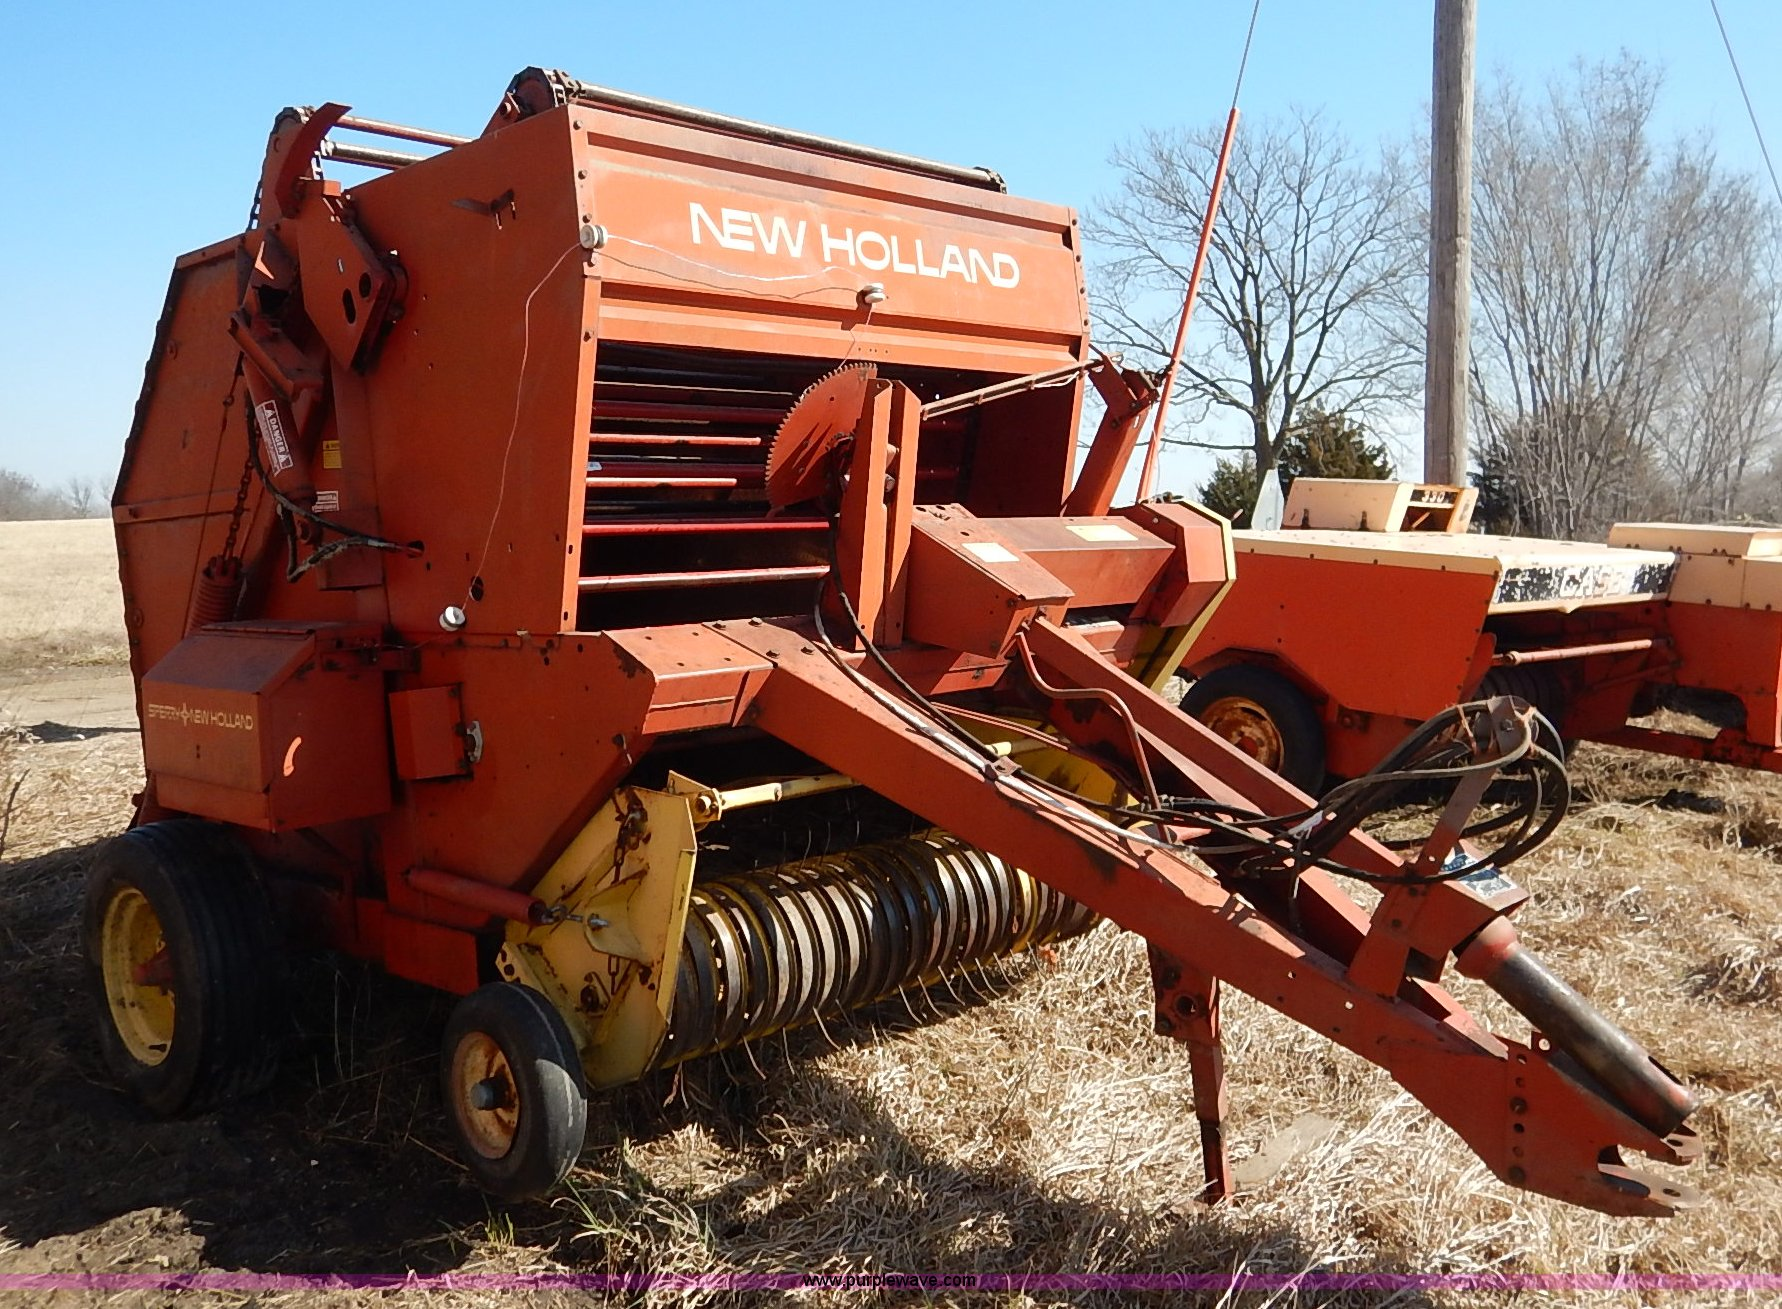 ... Holland 846 round baler Full size in new window ...